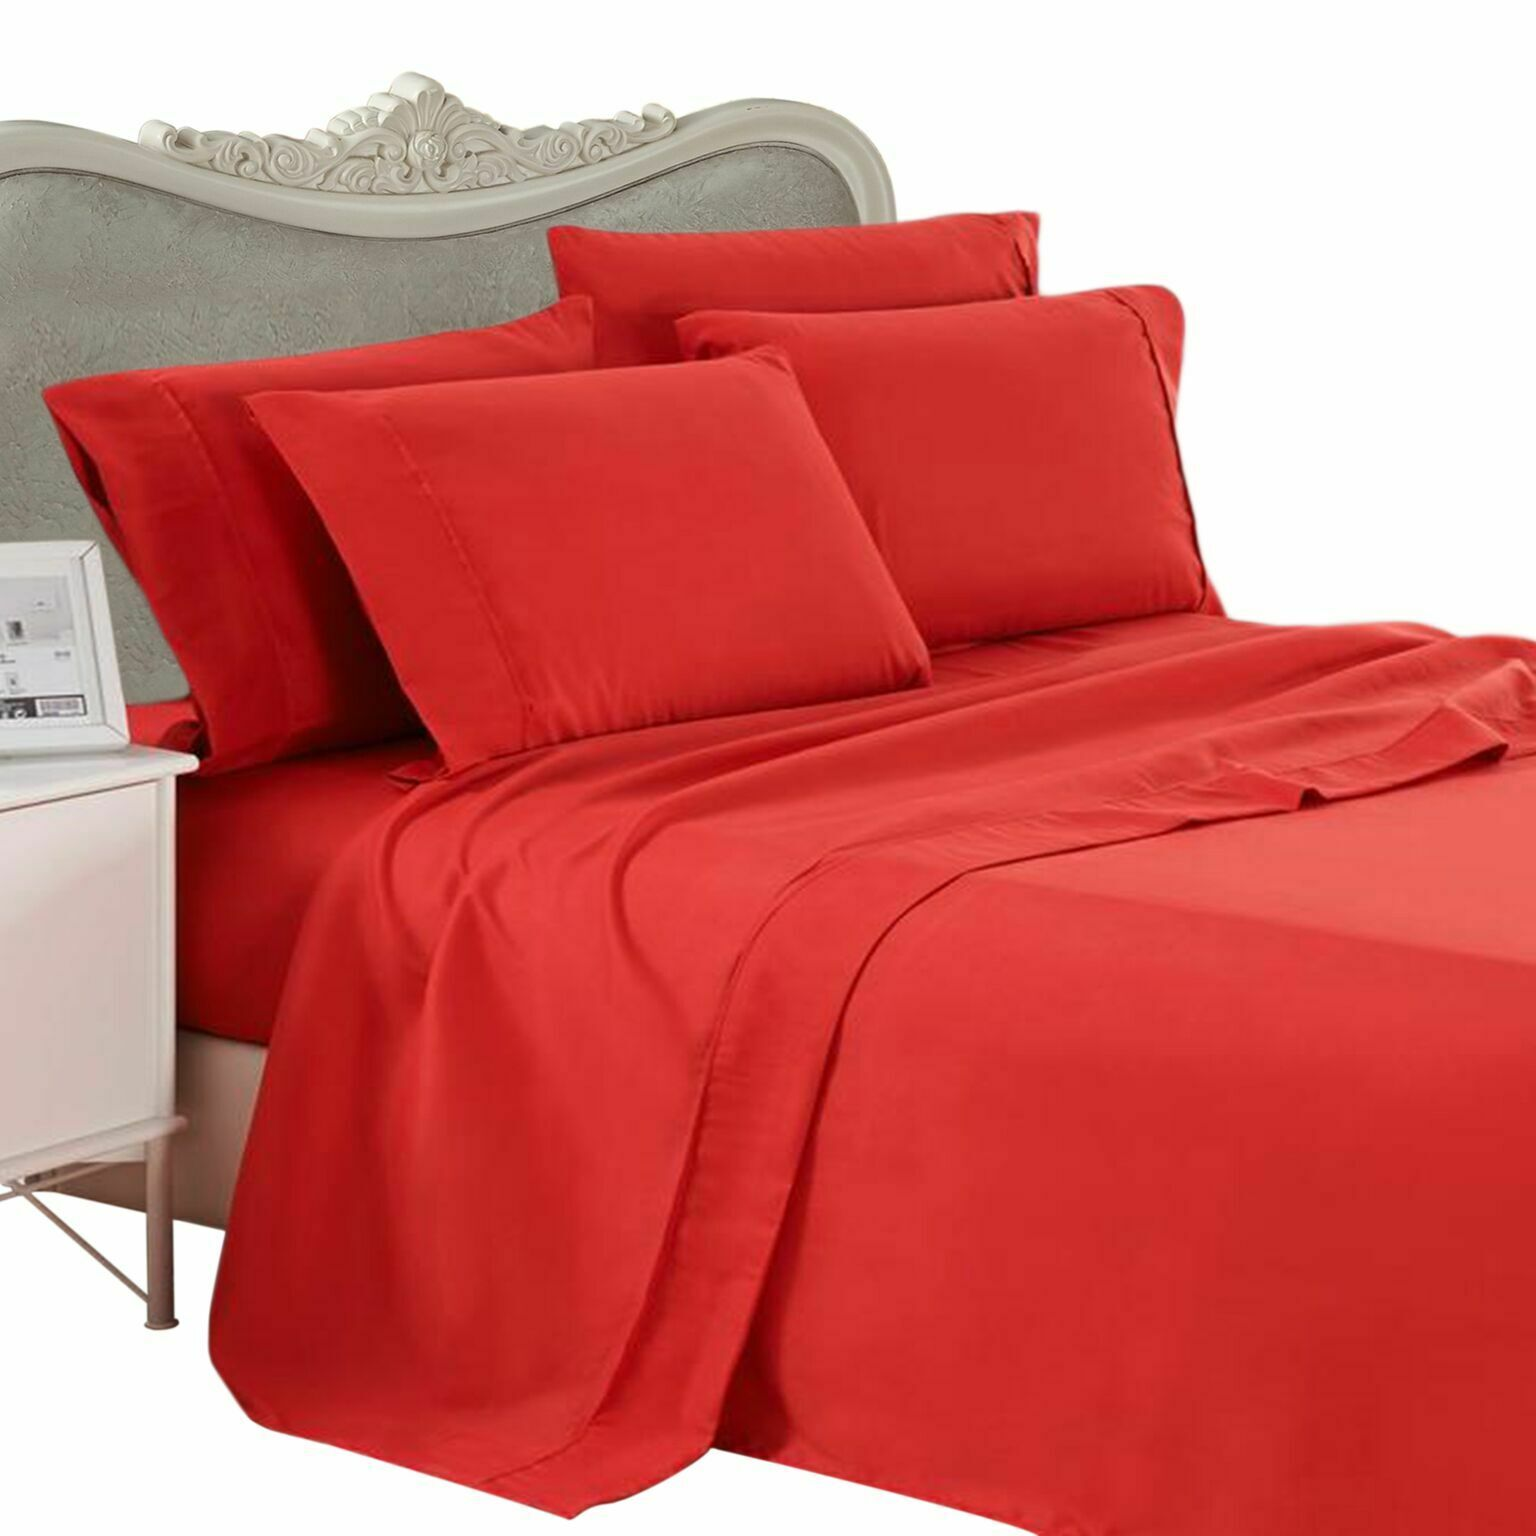 1000 Thread Count 100% Egyptian Cotton Bed Sheet Set 1000 TC FULL rosso Solid